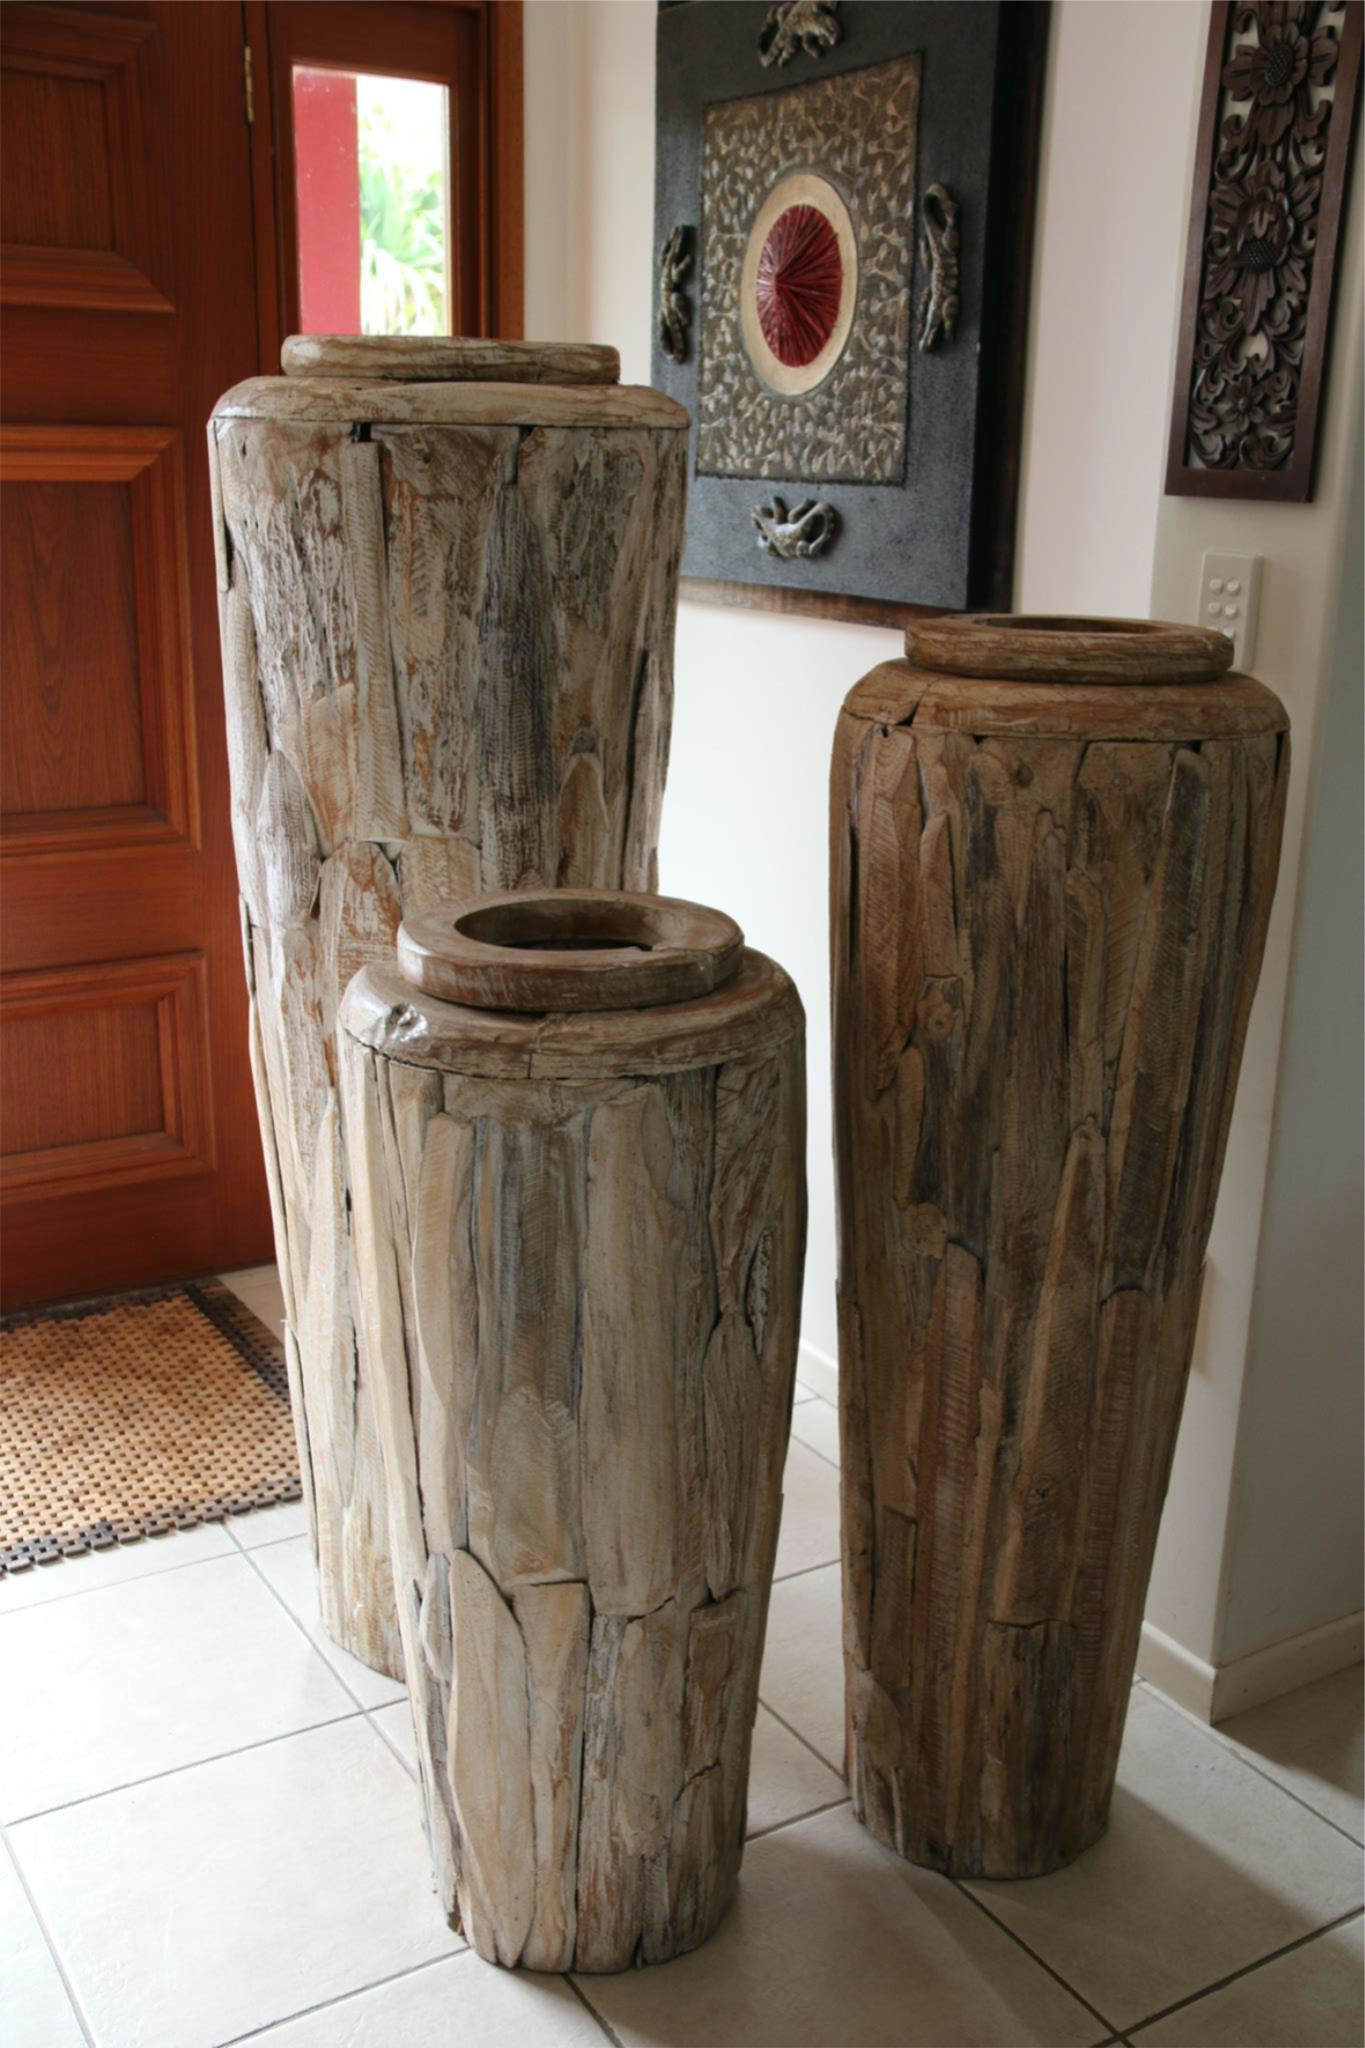 NEW BALINESE HAND CRAFTED TEAK WOOD Floor Pot Choose from Small, Medium or Large